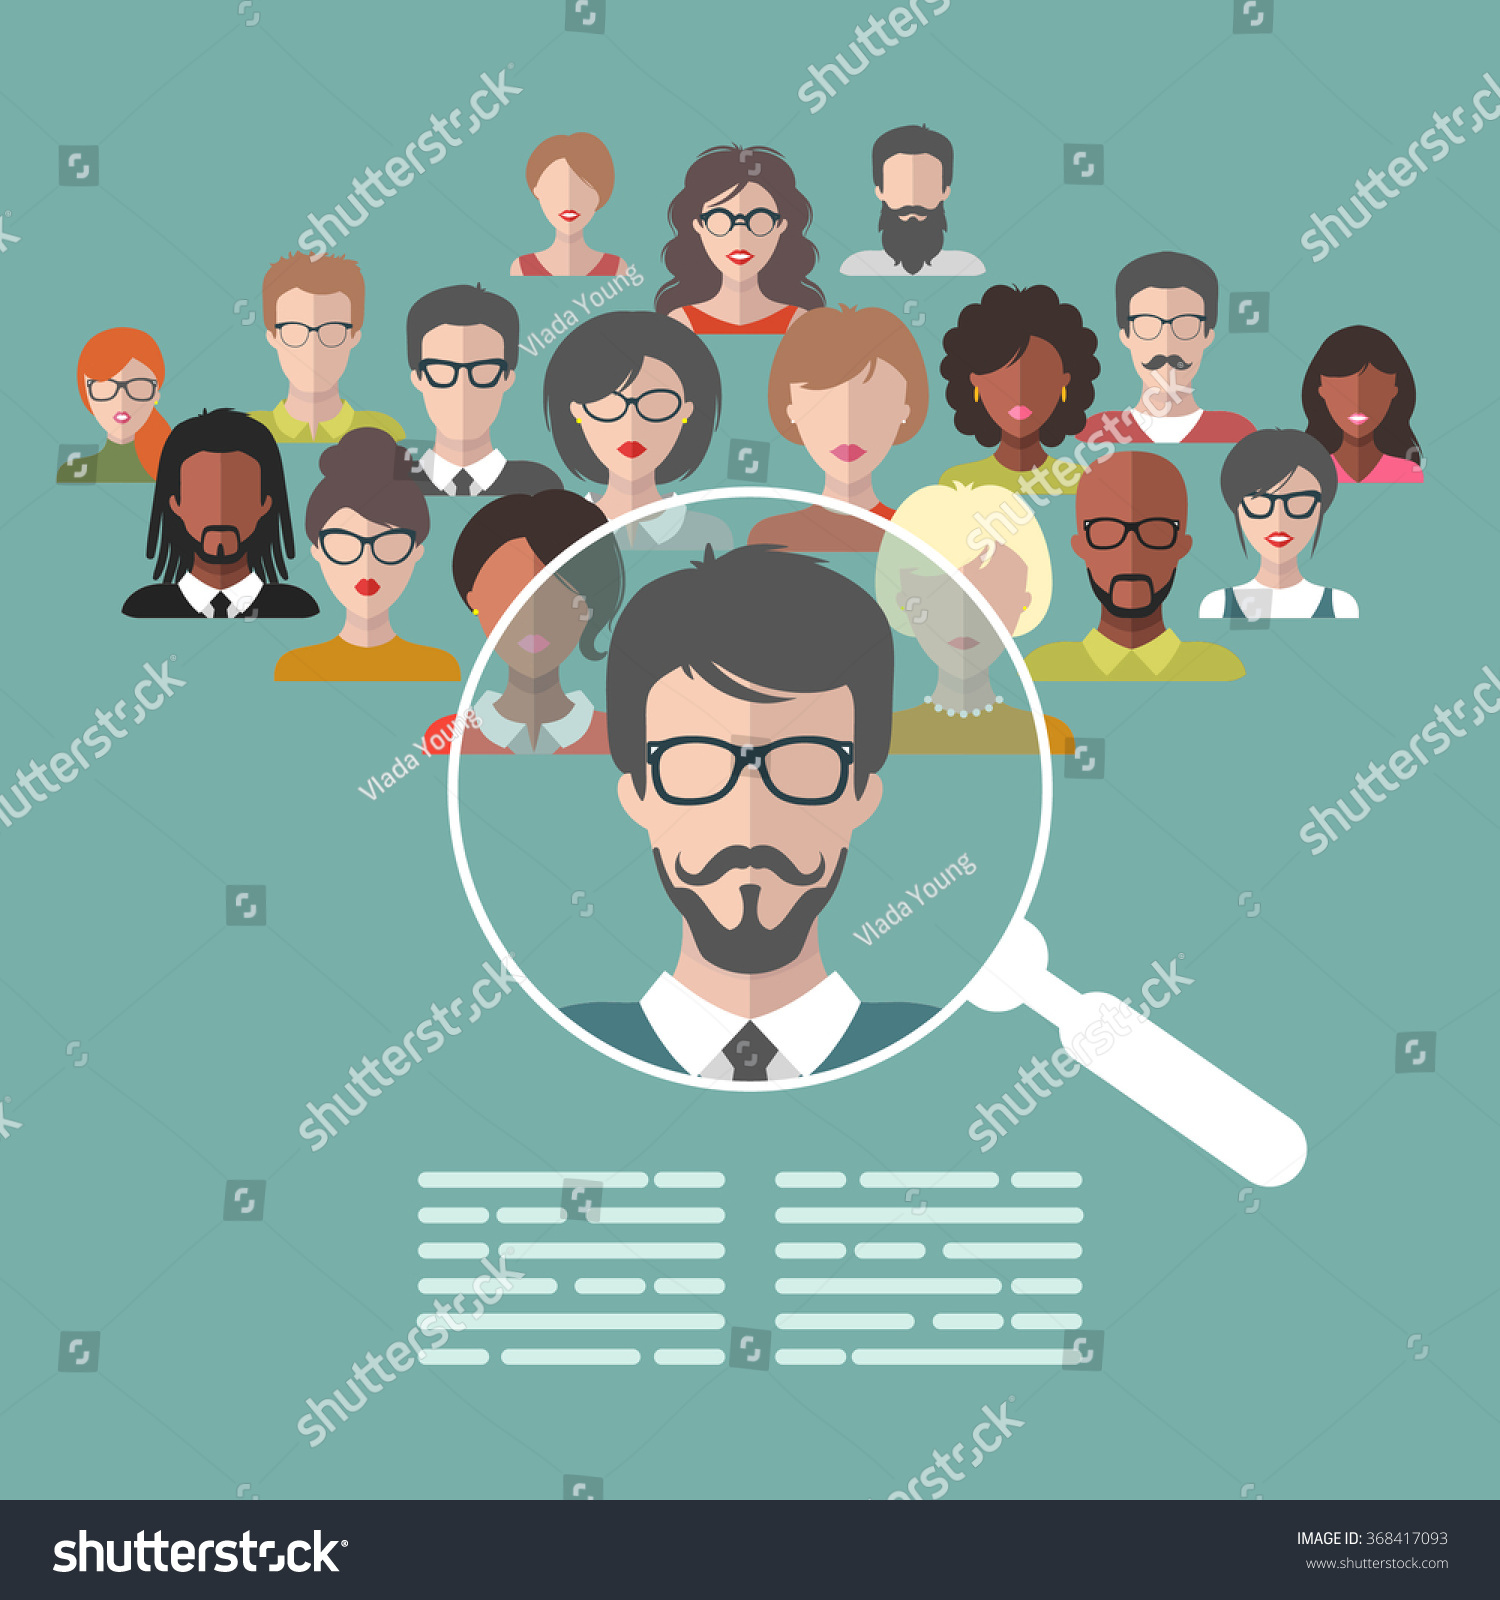 vector concept human resources management professional stock vector concept of human resources management professional staff research head hunter job magnifying